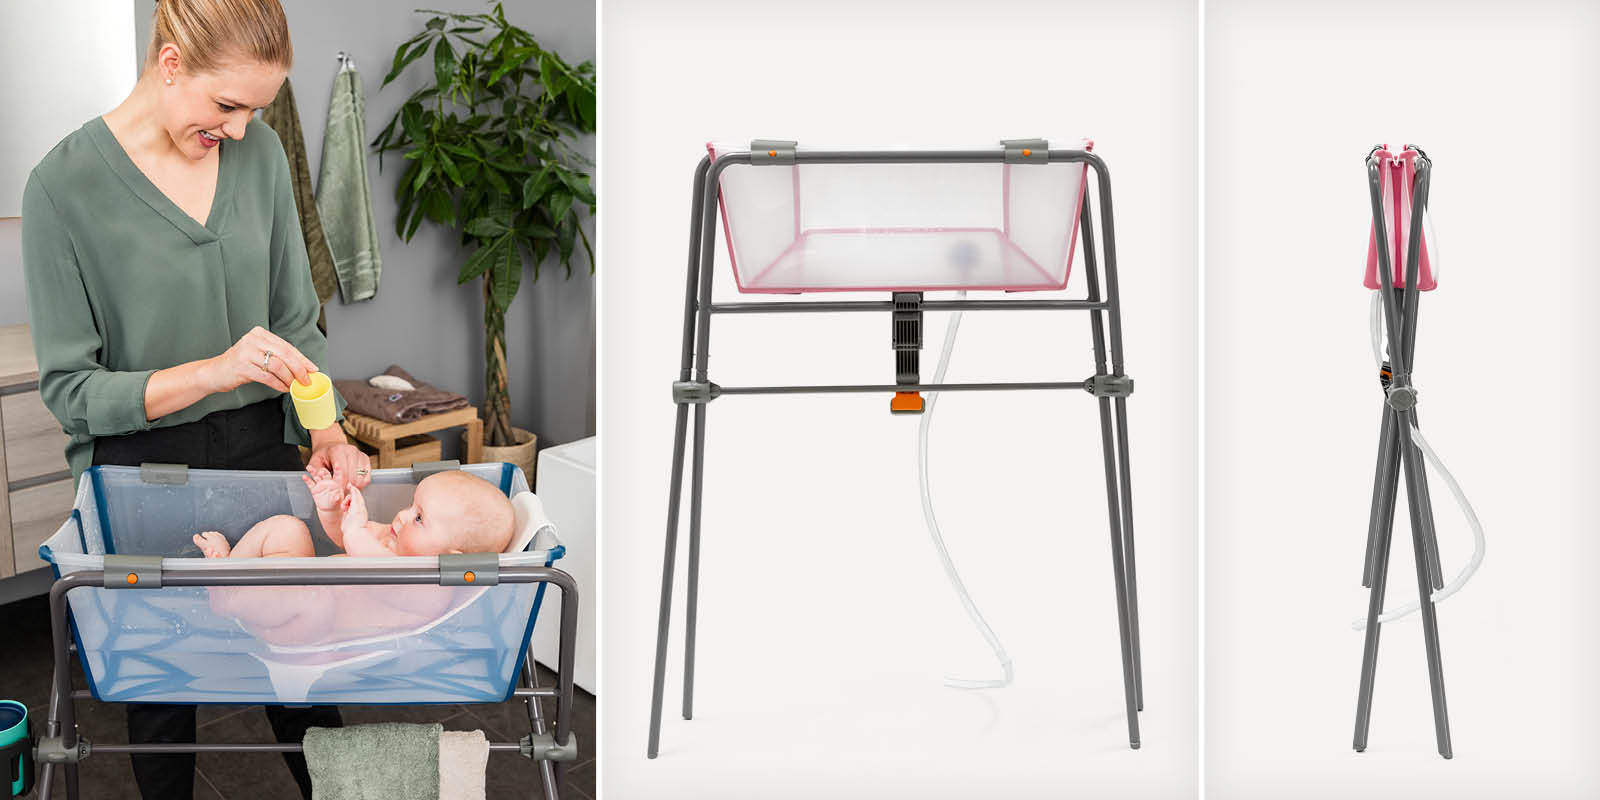 Stokke® Flexi Bath® Transparent Blue with Newborn Support, on Stokke™ Flexi Bath™ Stand. Tranparent Pink on Stokke™ Flexi Bath™ Stand.